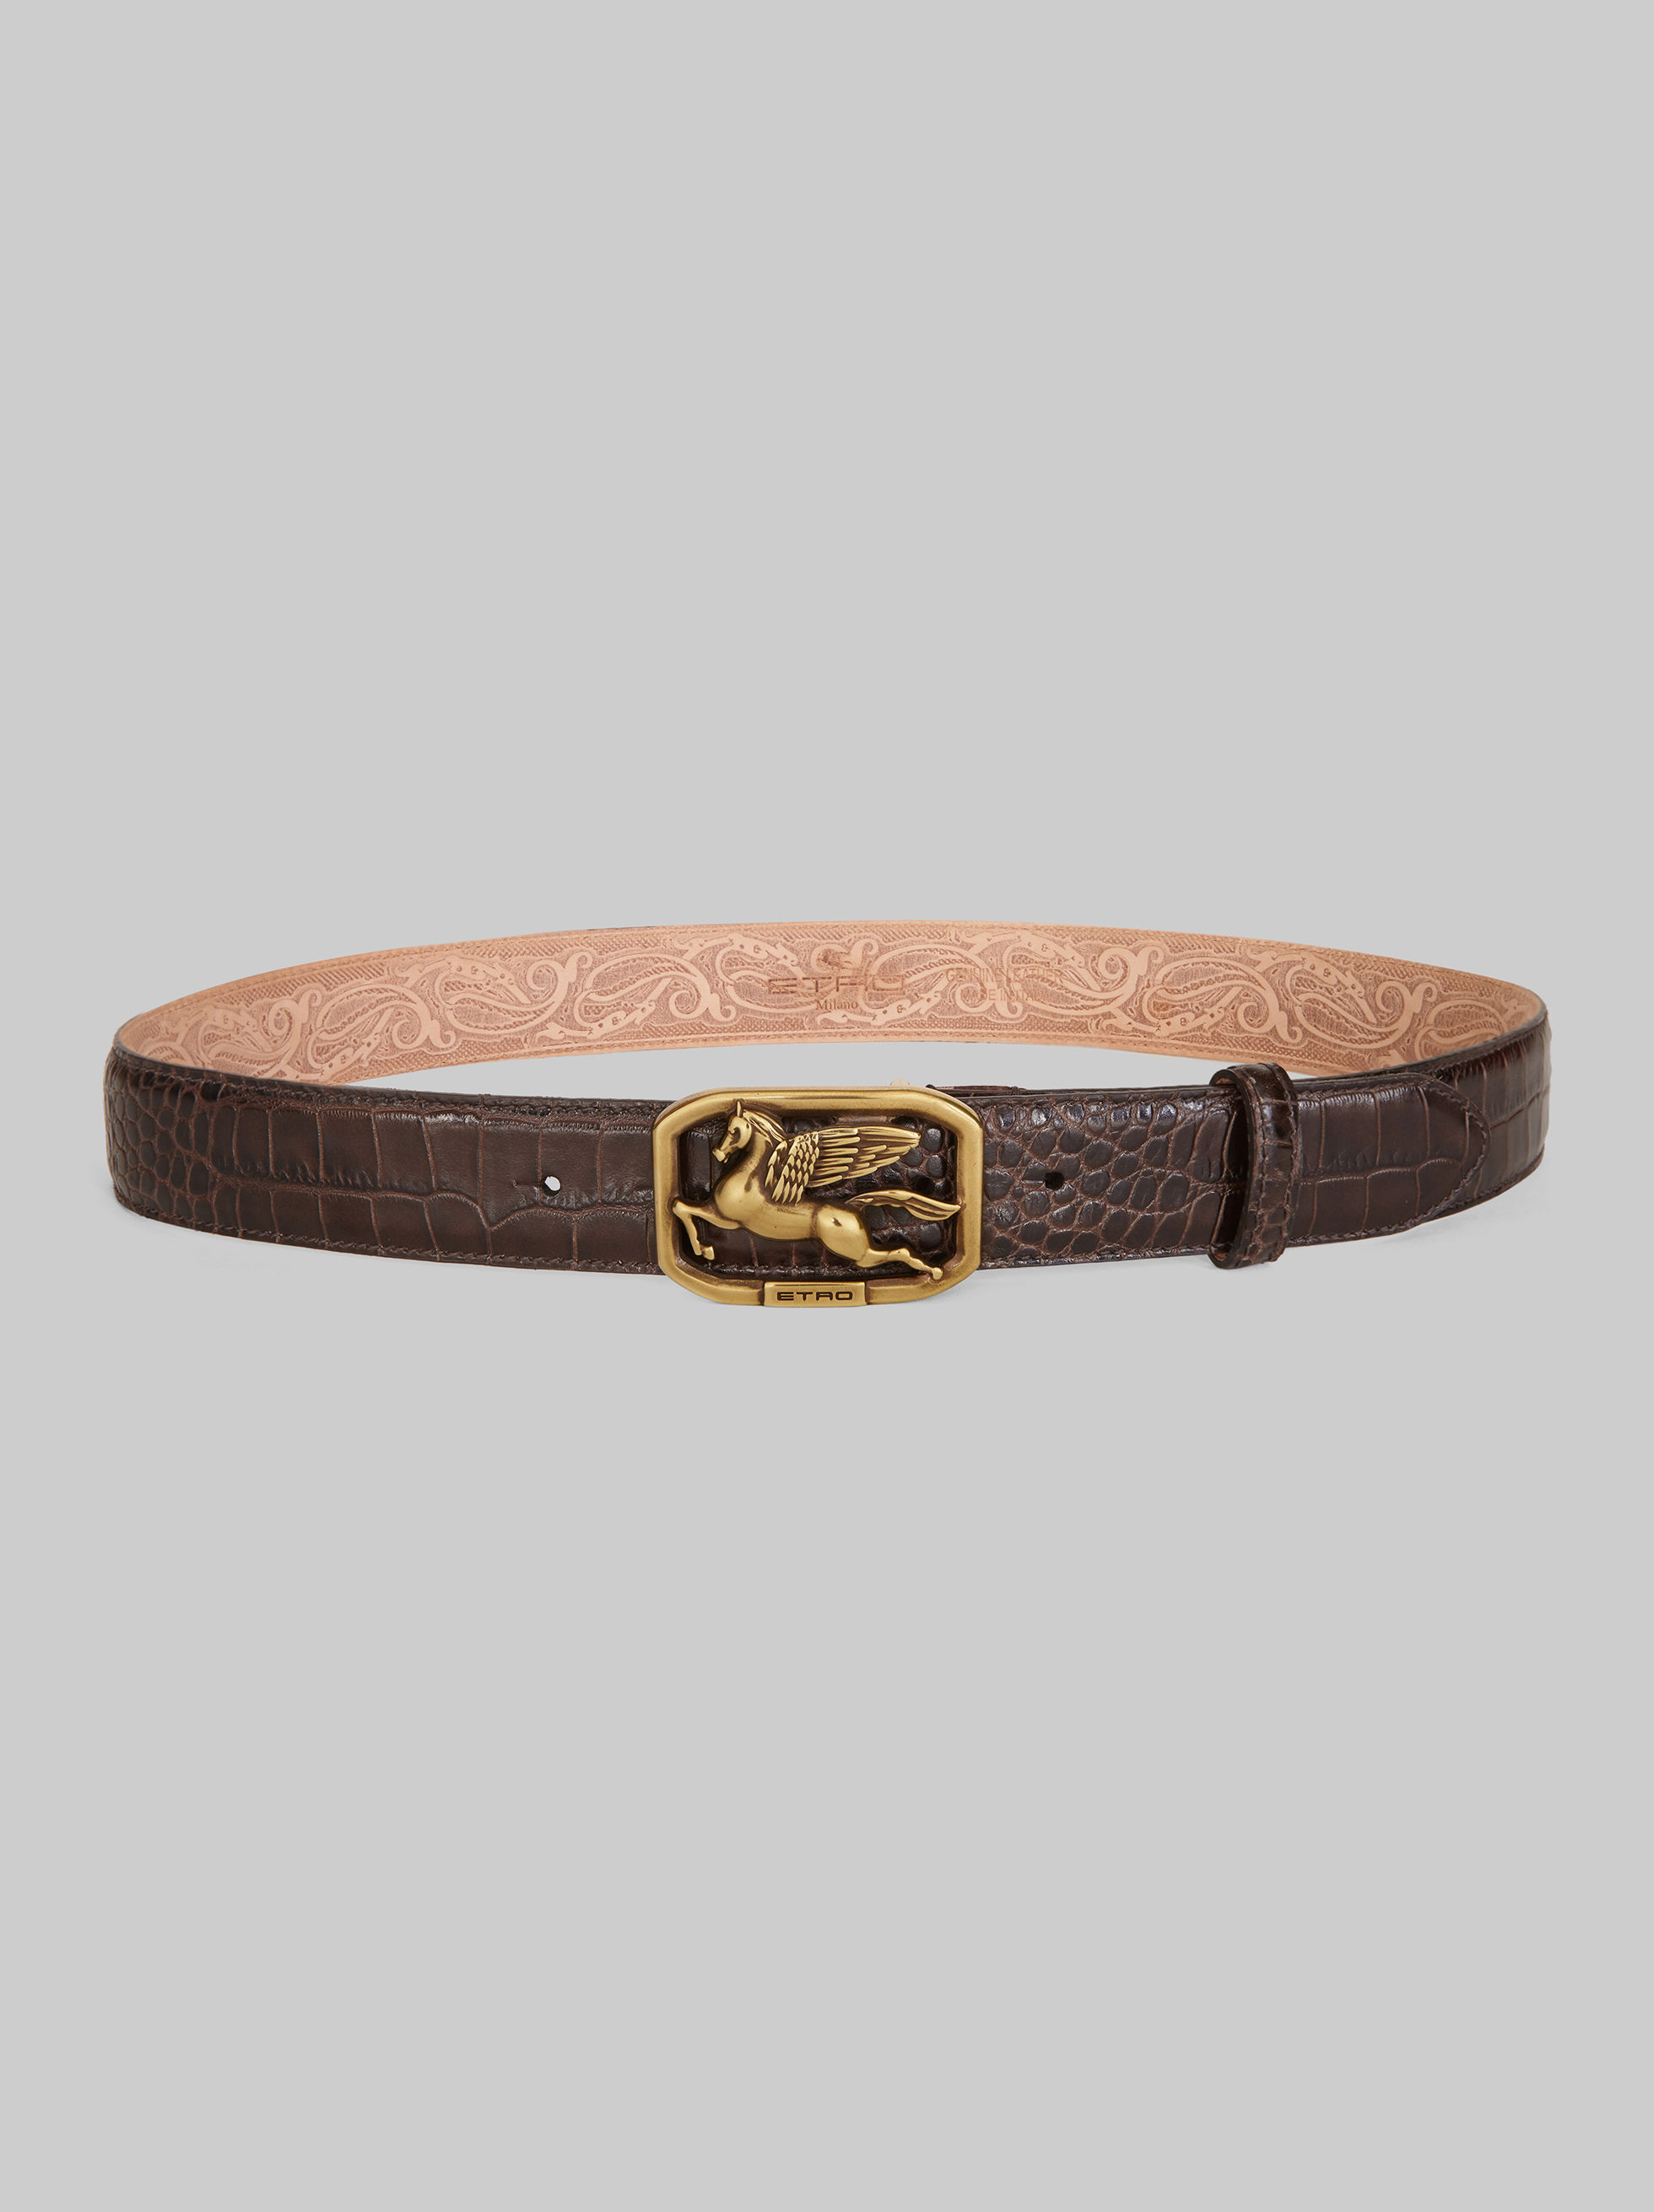 BELT WITH PEGASO